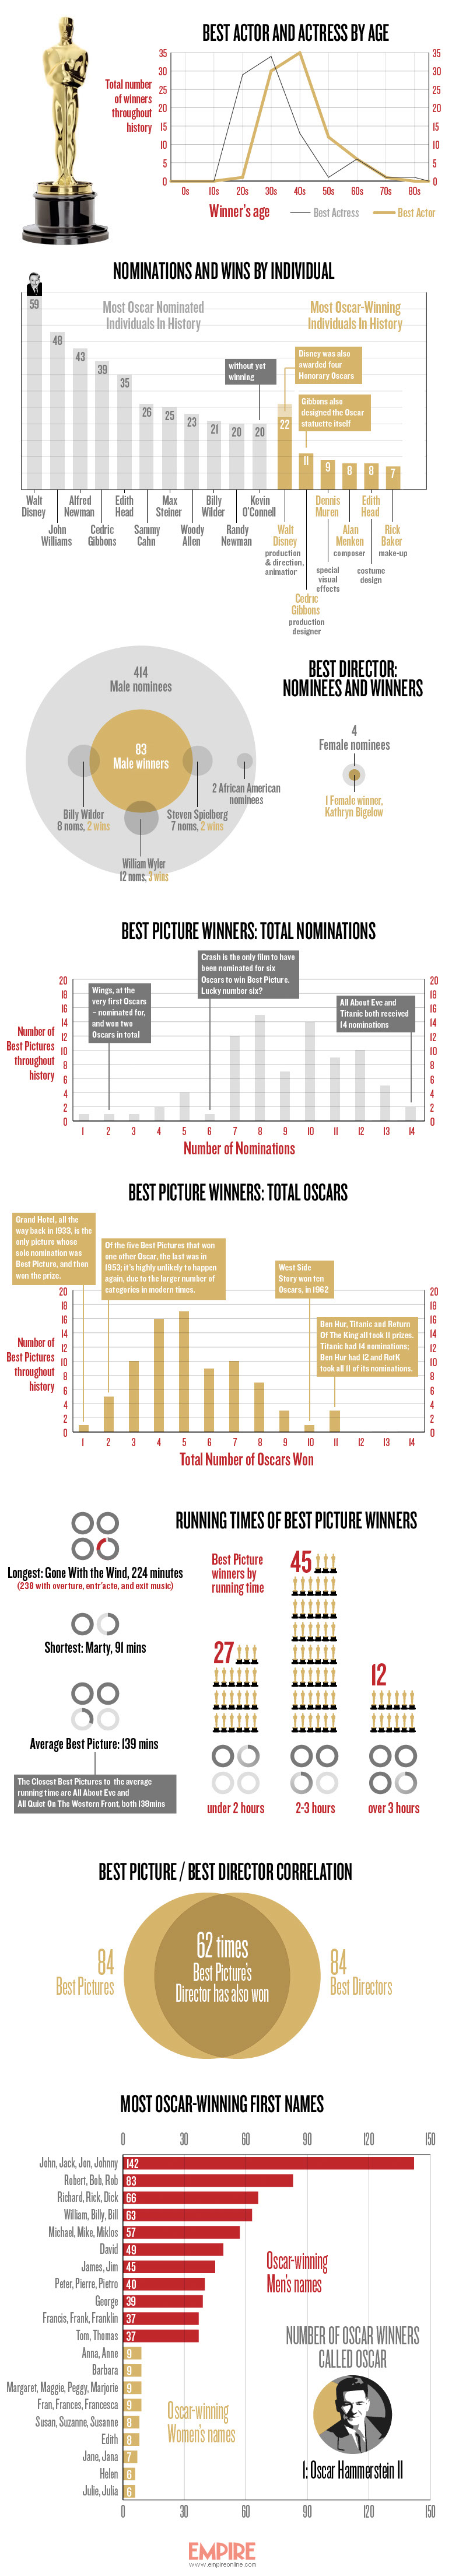 Oscars-History-Infographic